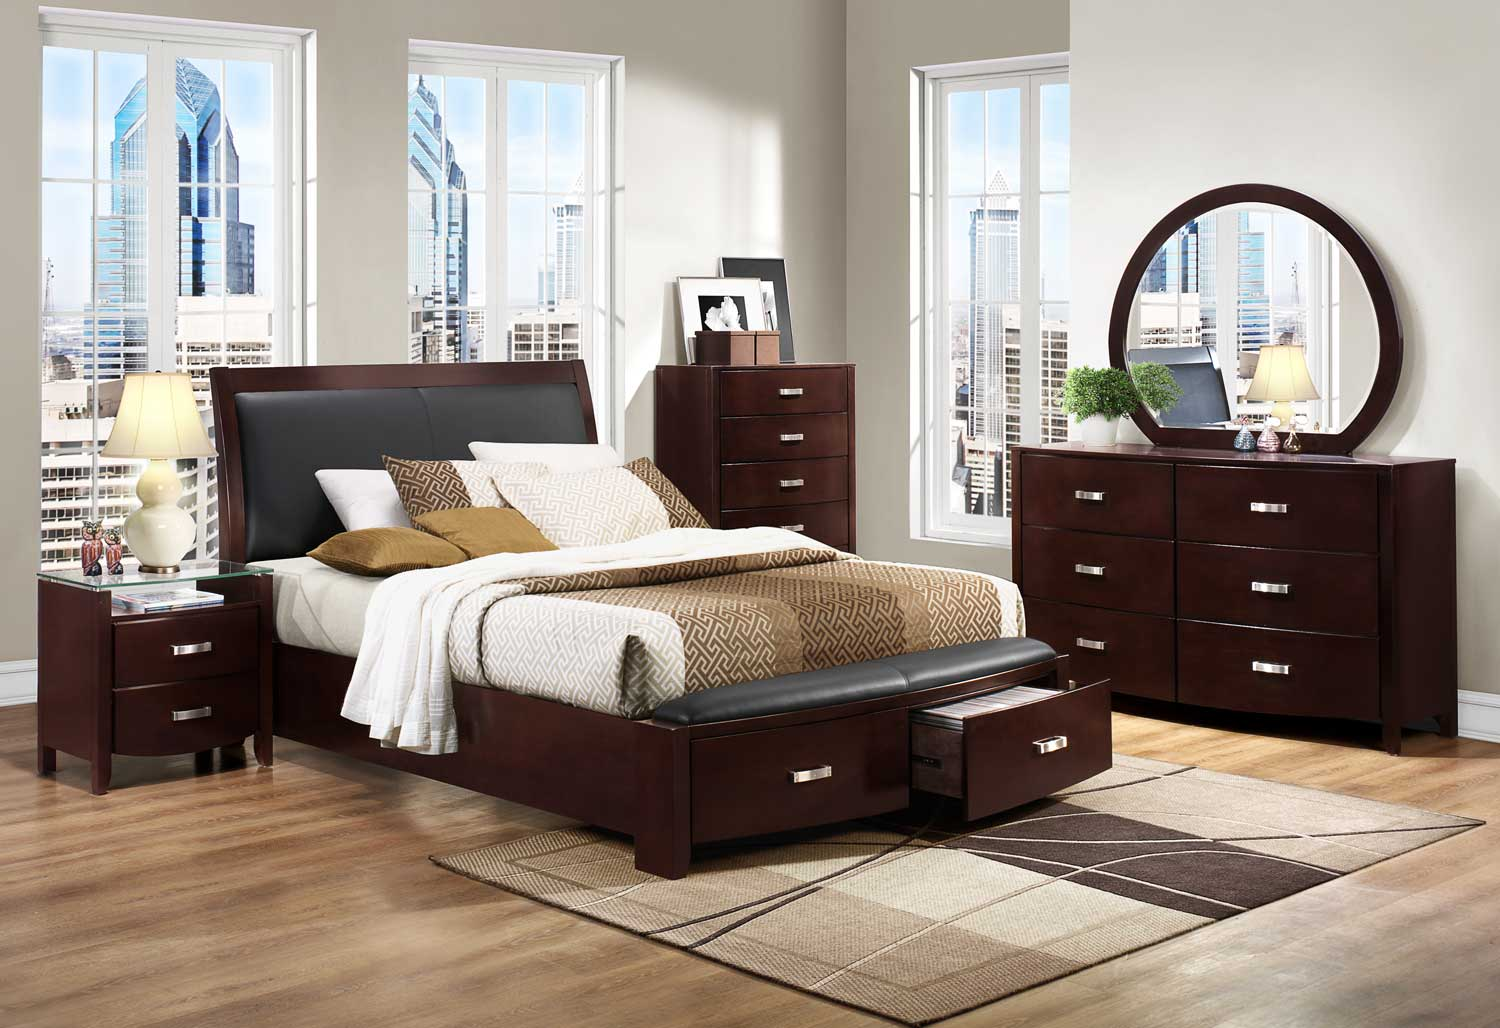 Homelegance Lyric Platform Bedroom Set